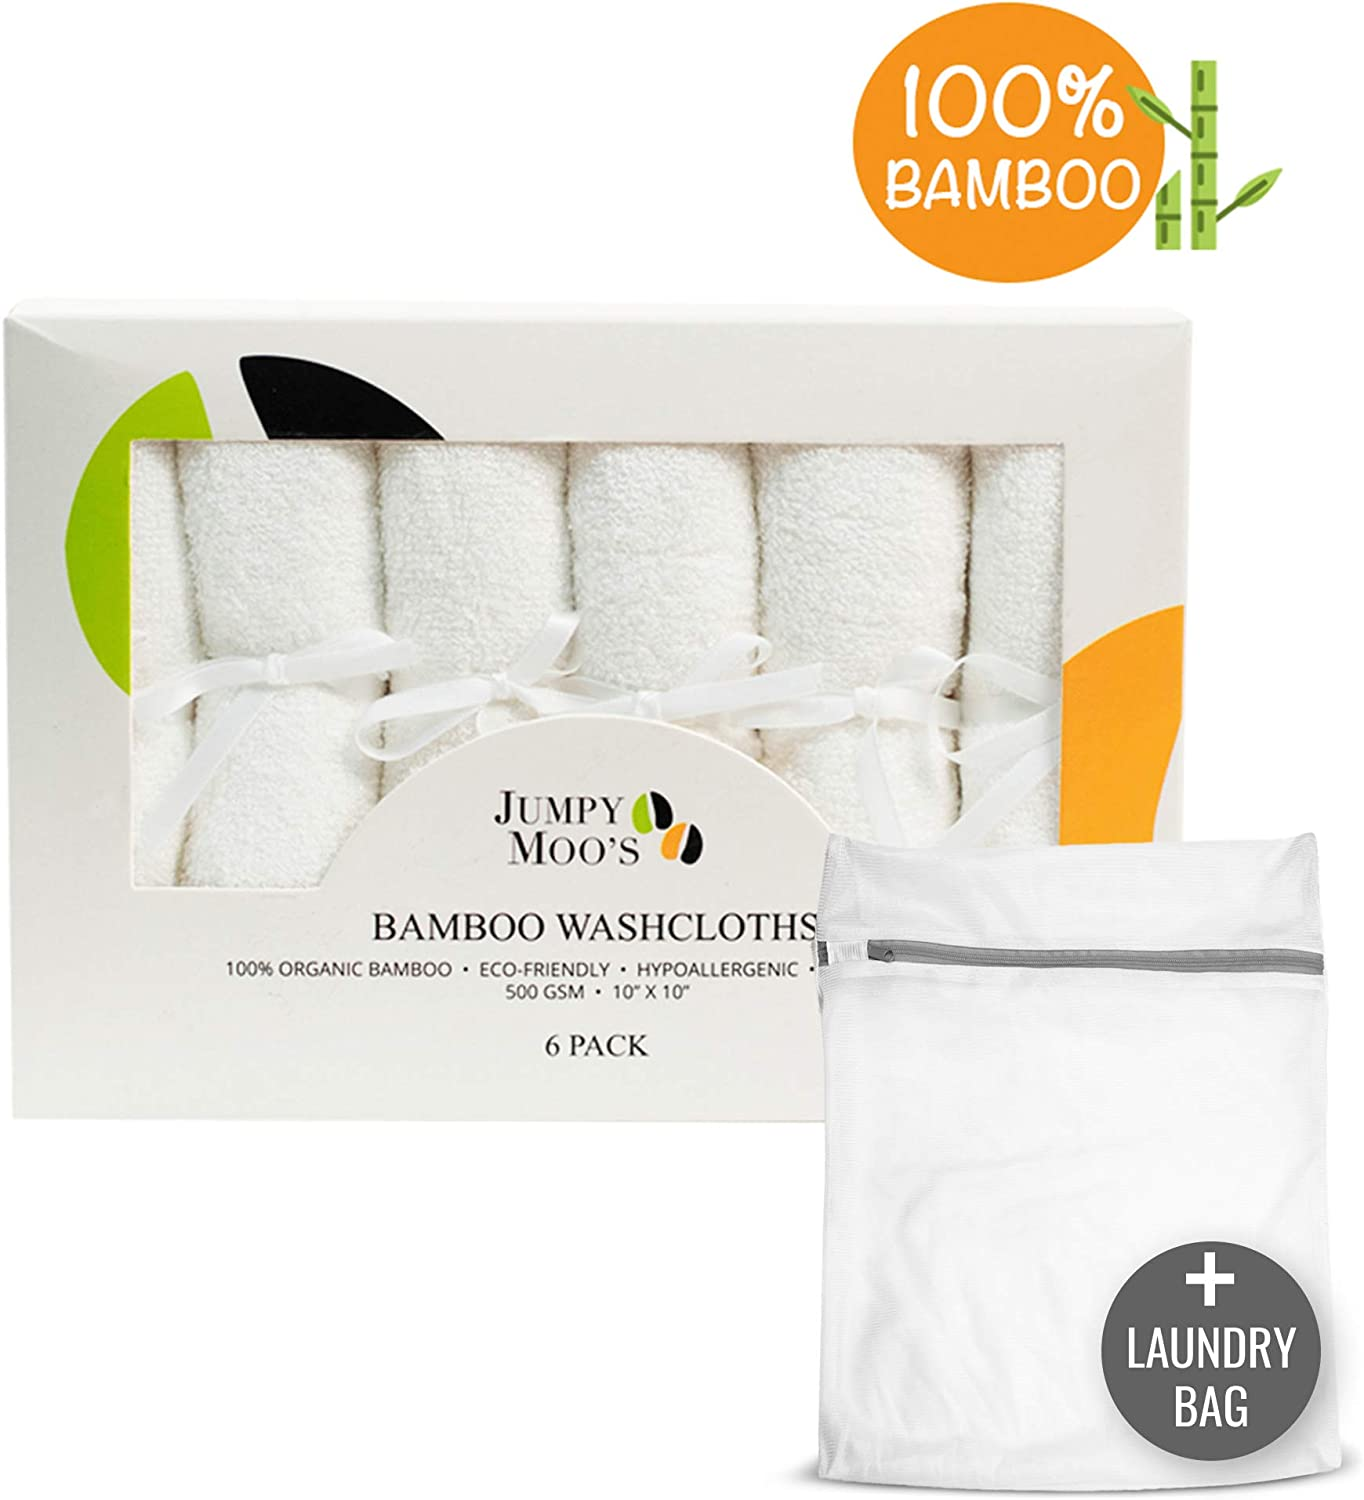 Highly Absorbent /& Antibacterial 500 GSM 100/% Bamboo Organic Baby Washcloth /& Laundry Bag Soft /& Delicate Fabric 6 Pack - White Hypoallergenic 10 x 10 in